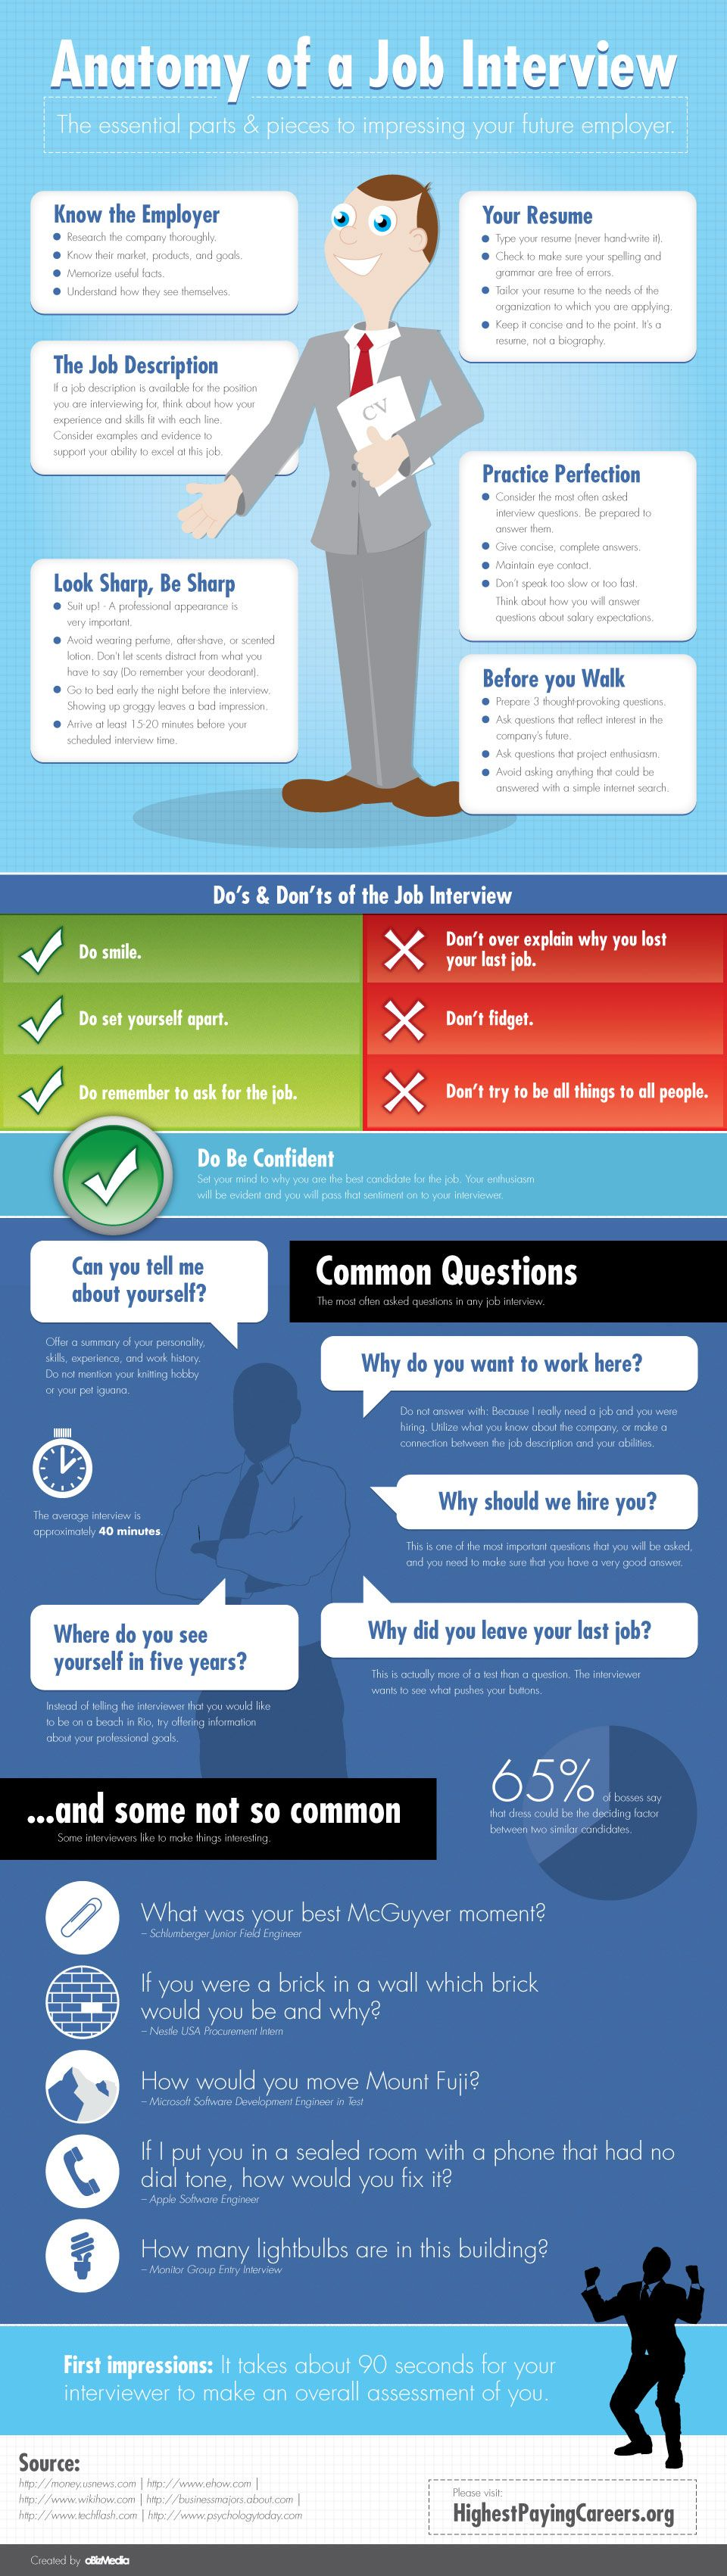 Anatomy of a Job Interview | Infoviz Lust | Job interview tips